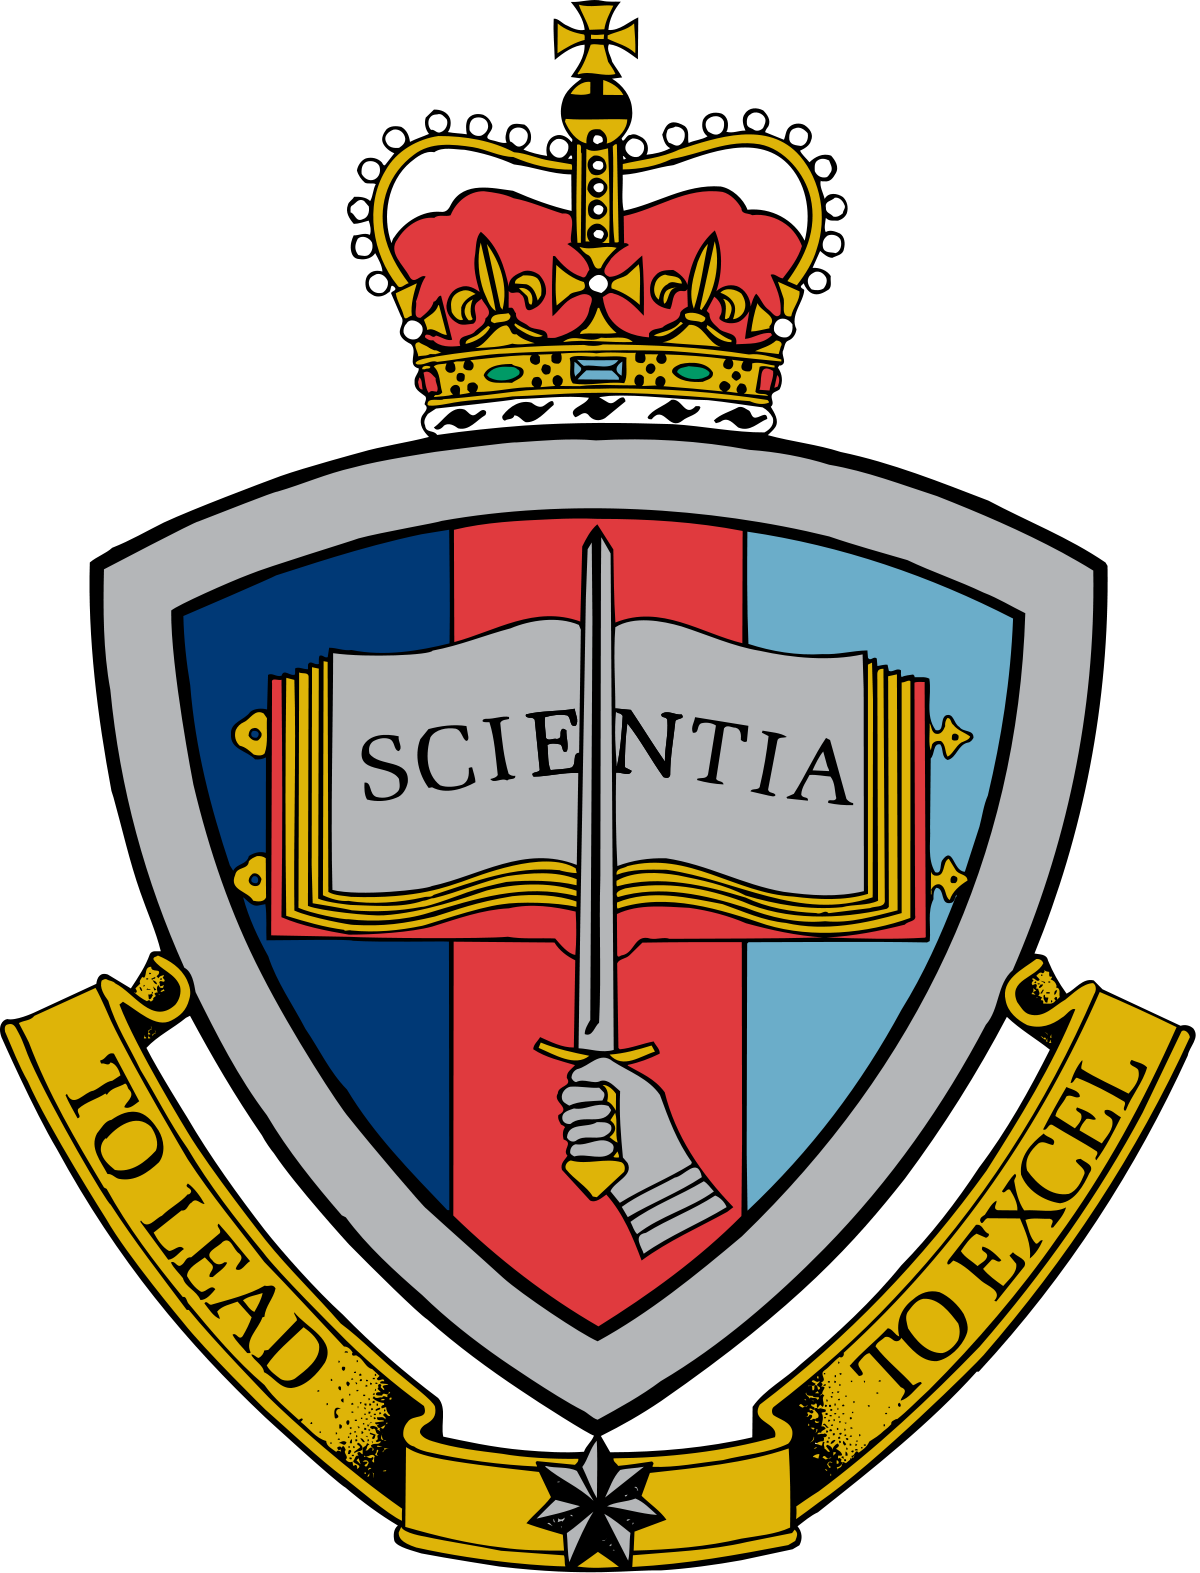 Navy clipart defence. Australian force academy wikipedia